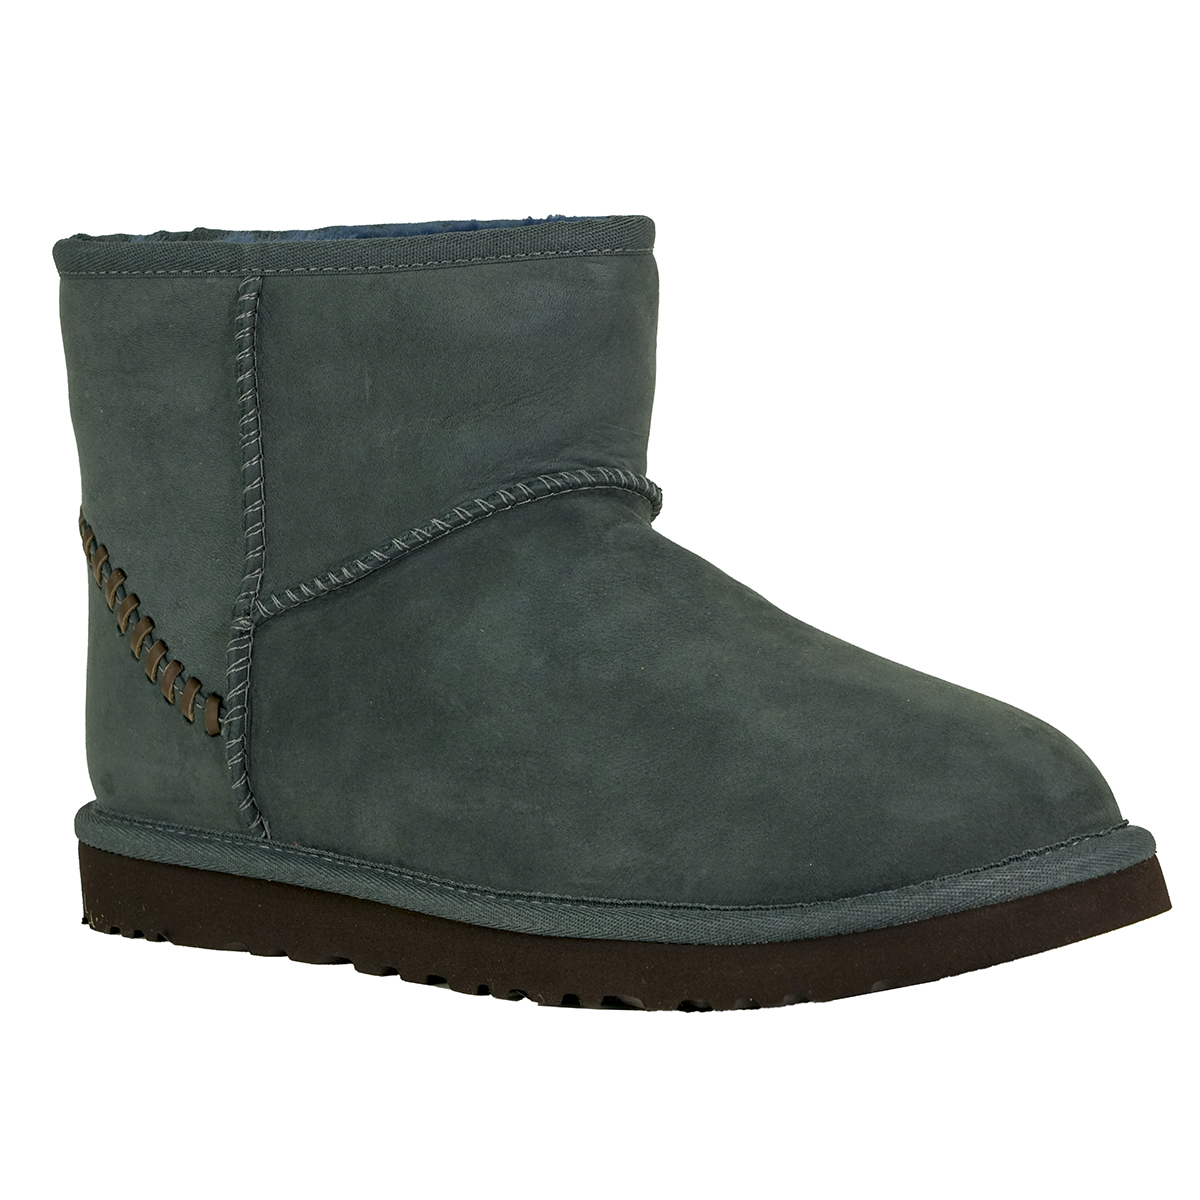 Ugg Men's Classic Mini Deco Boots; Picture 2 of 2